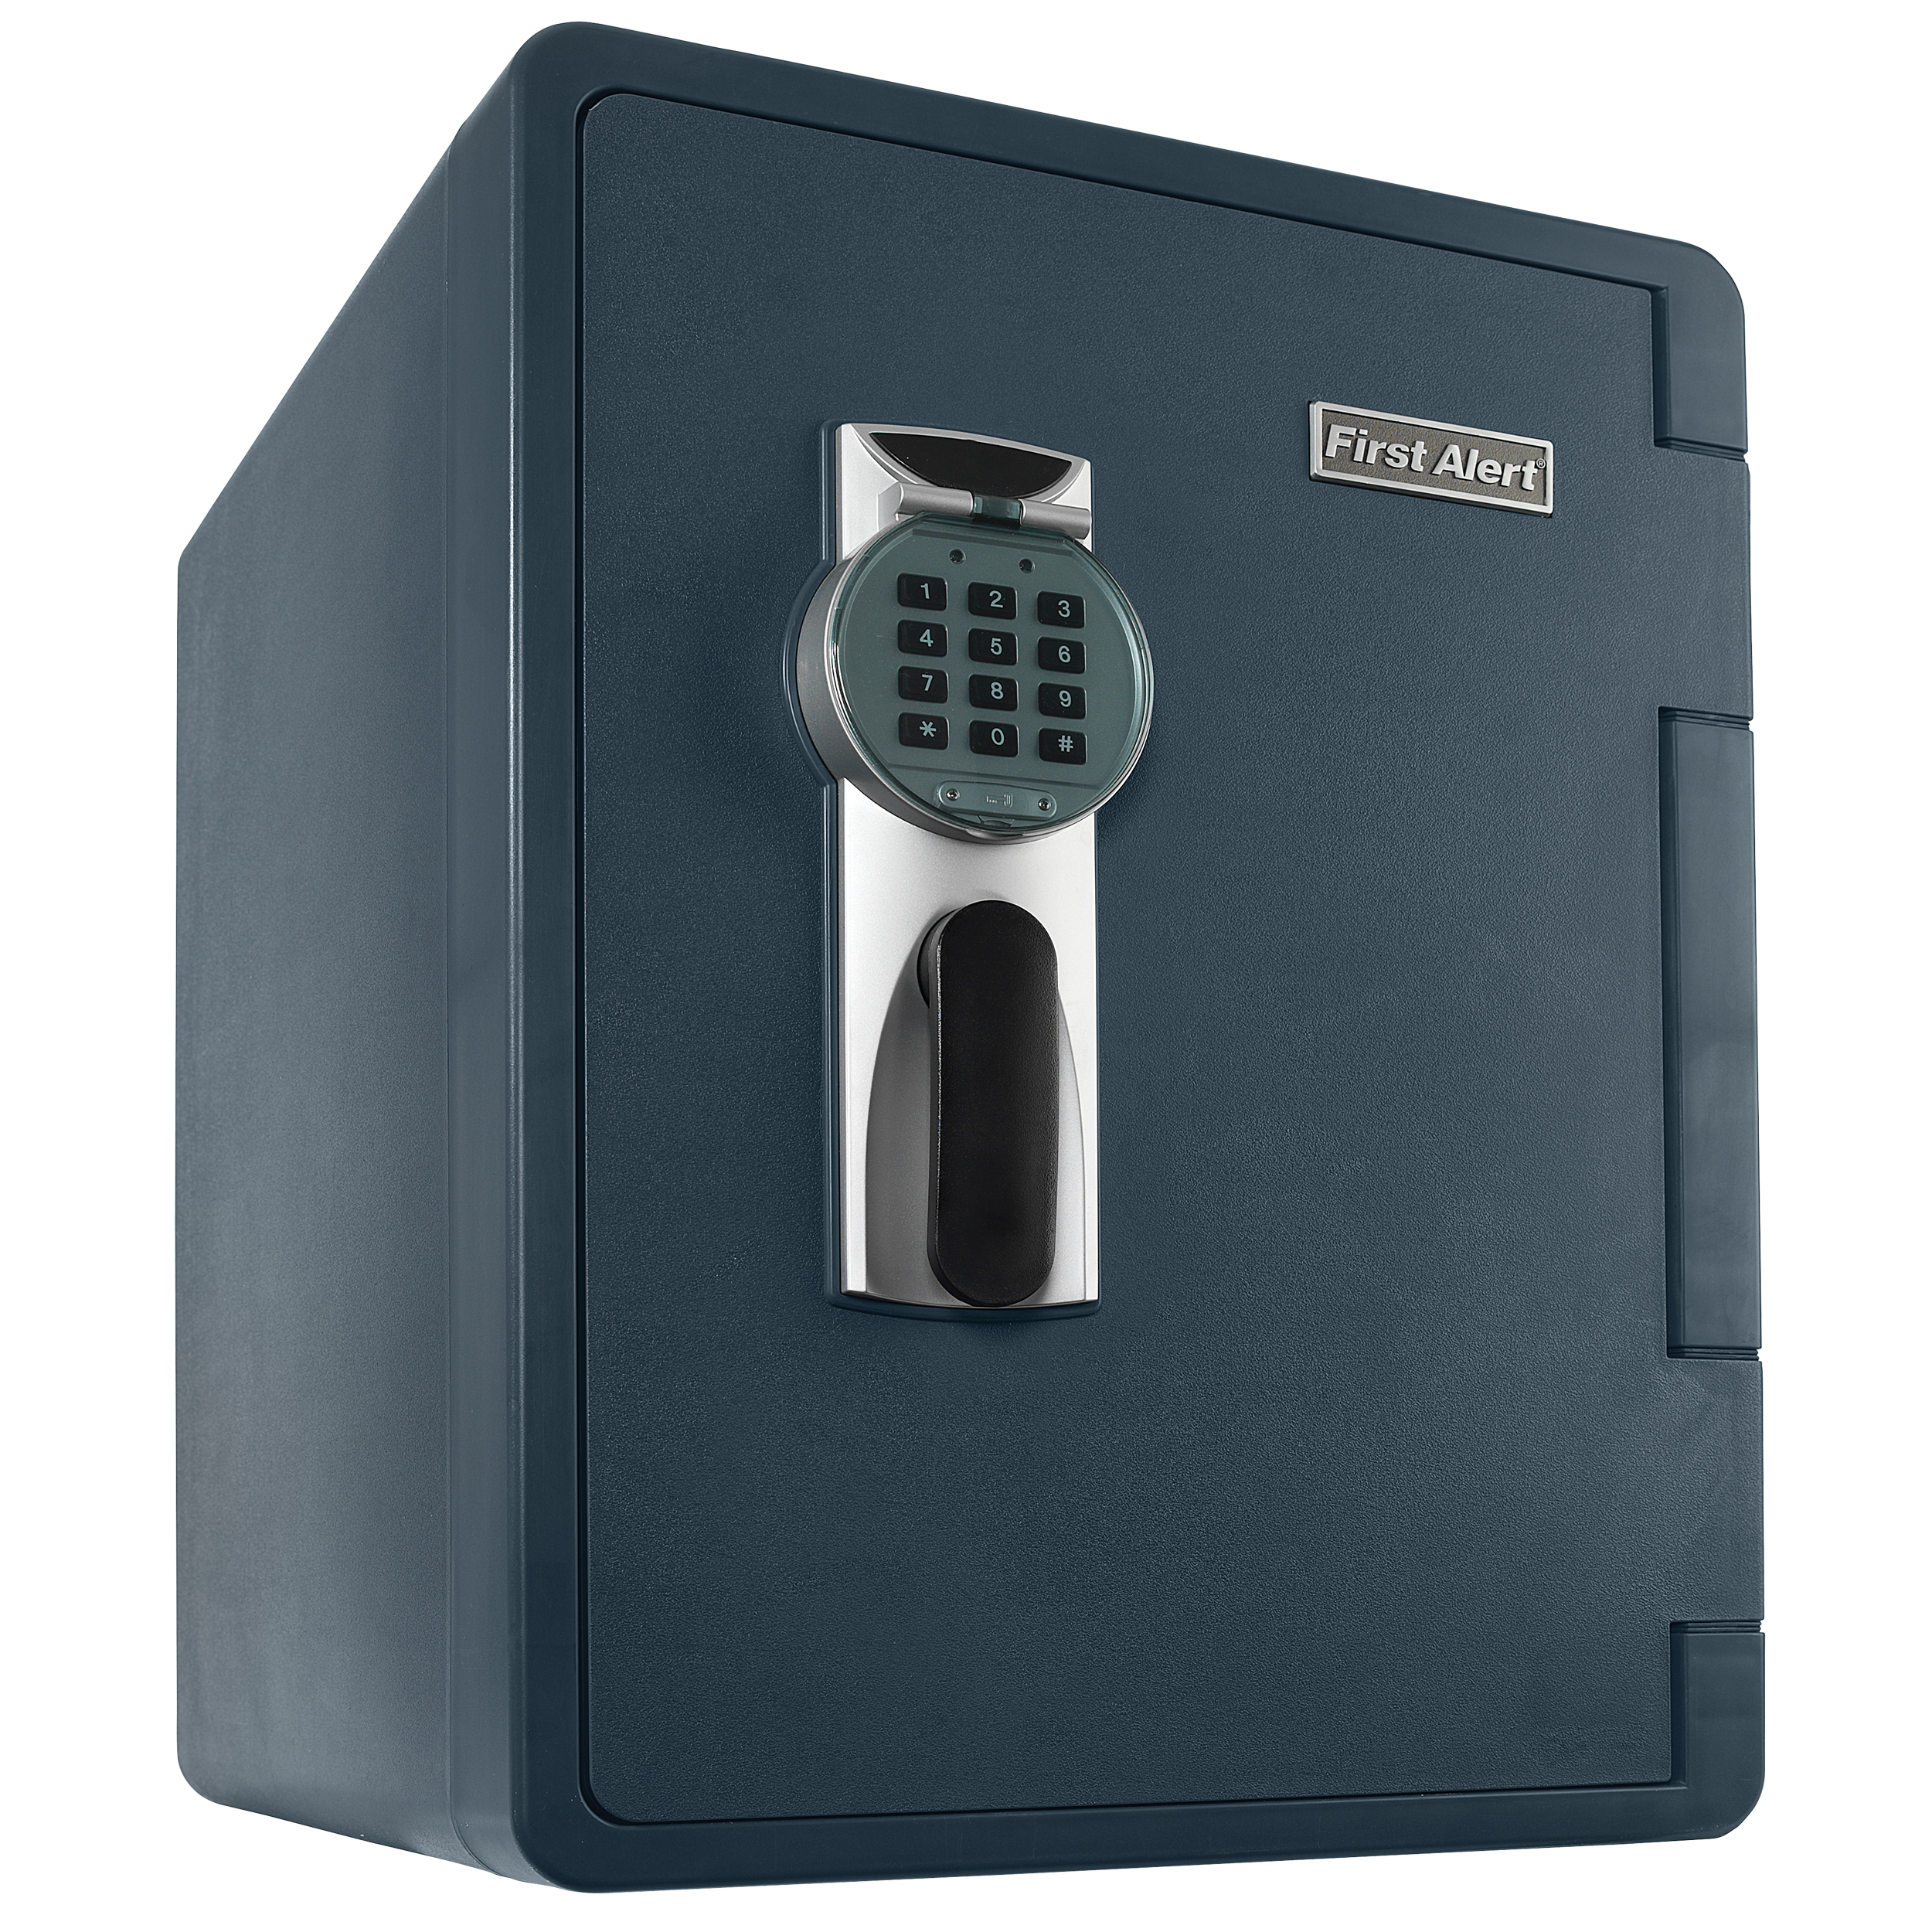 First Alert 2096DF Waterproof and Fire-Resistant Digital Safe, 2.1 Cubic Feet